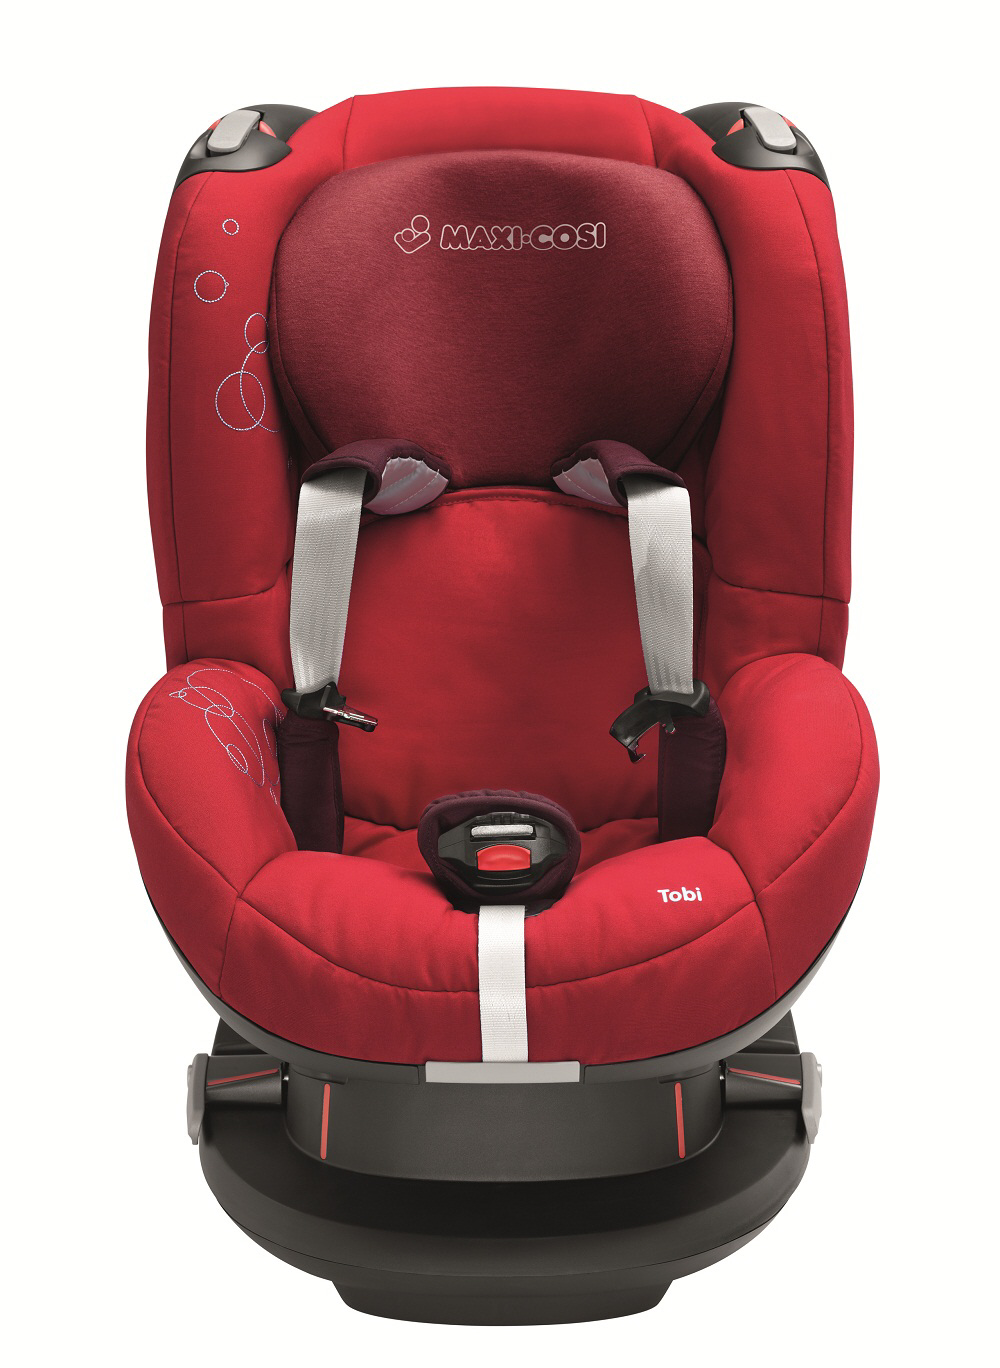 maxi cosi kindersitz tobi 2012 2012 total black buy at kidsroom. Black Bedroom Furniture Sets. Home Design Ideas